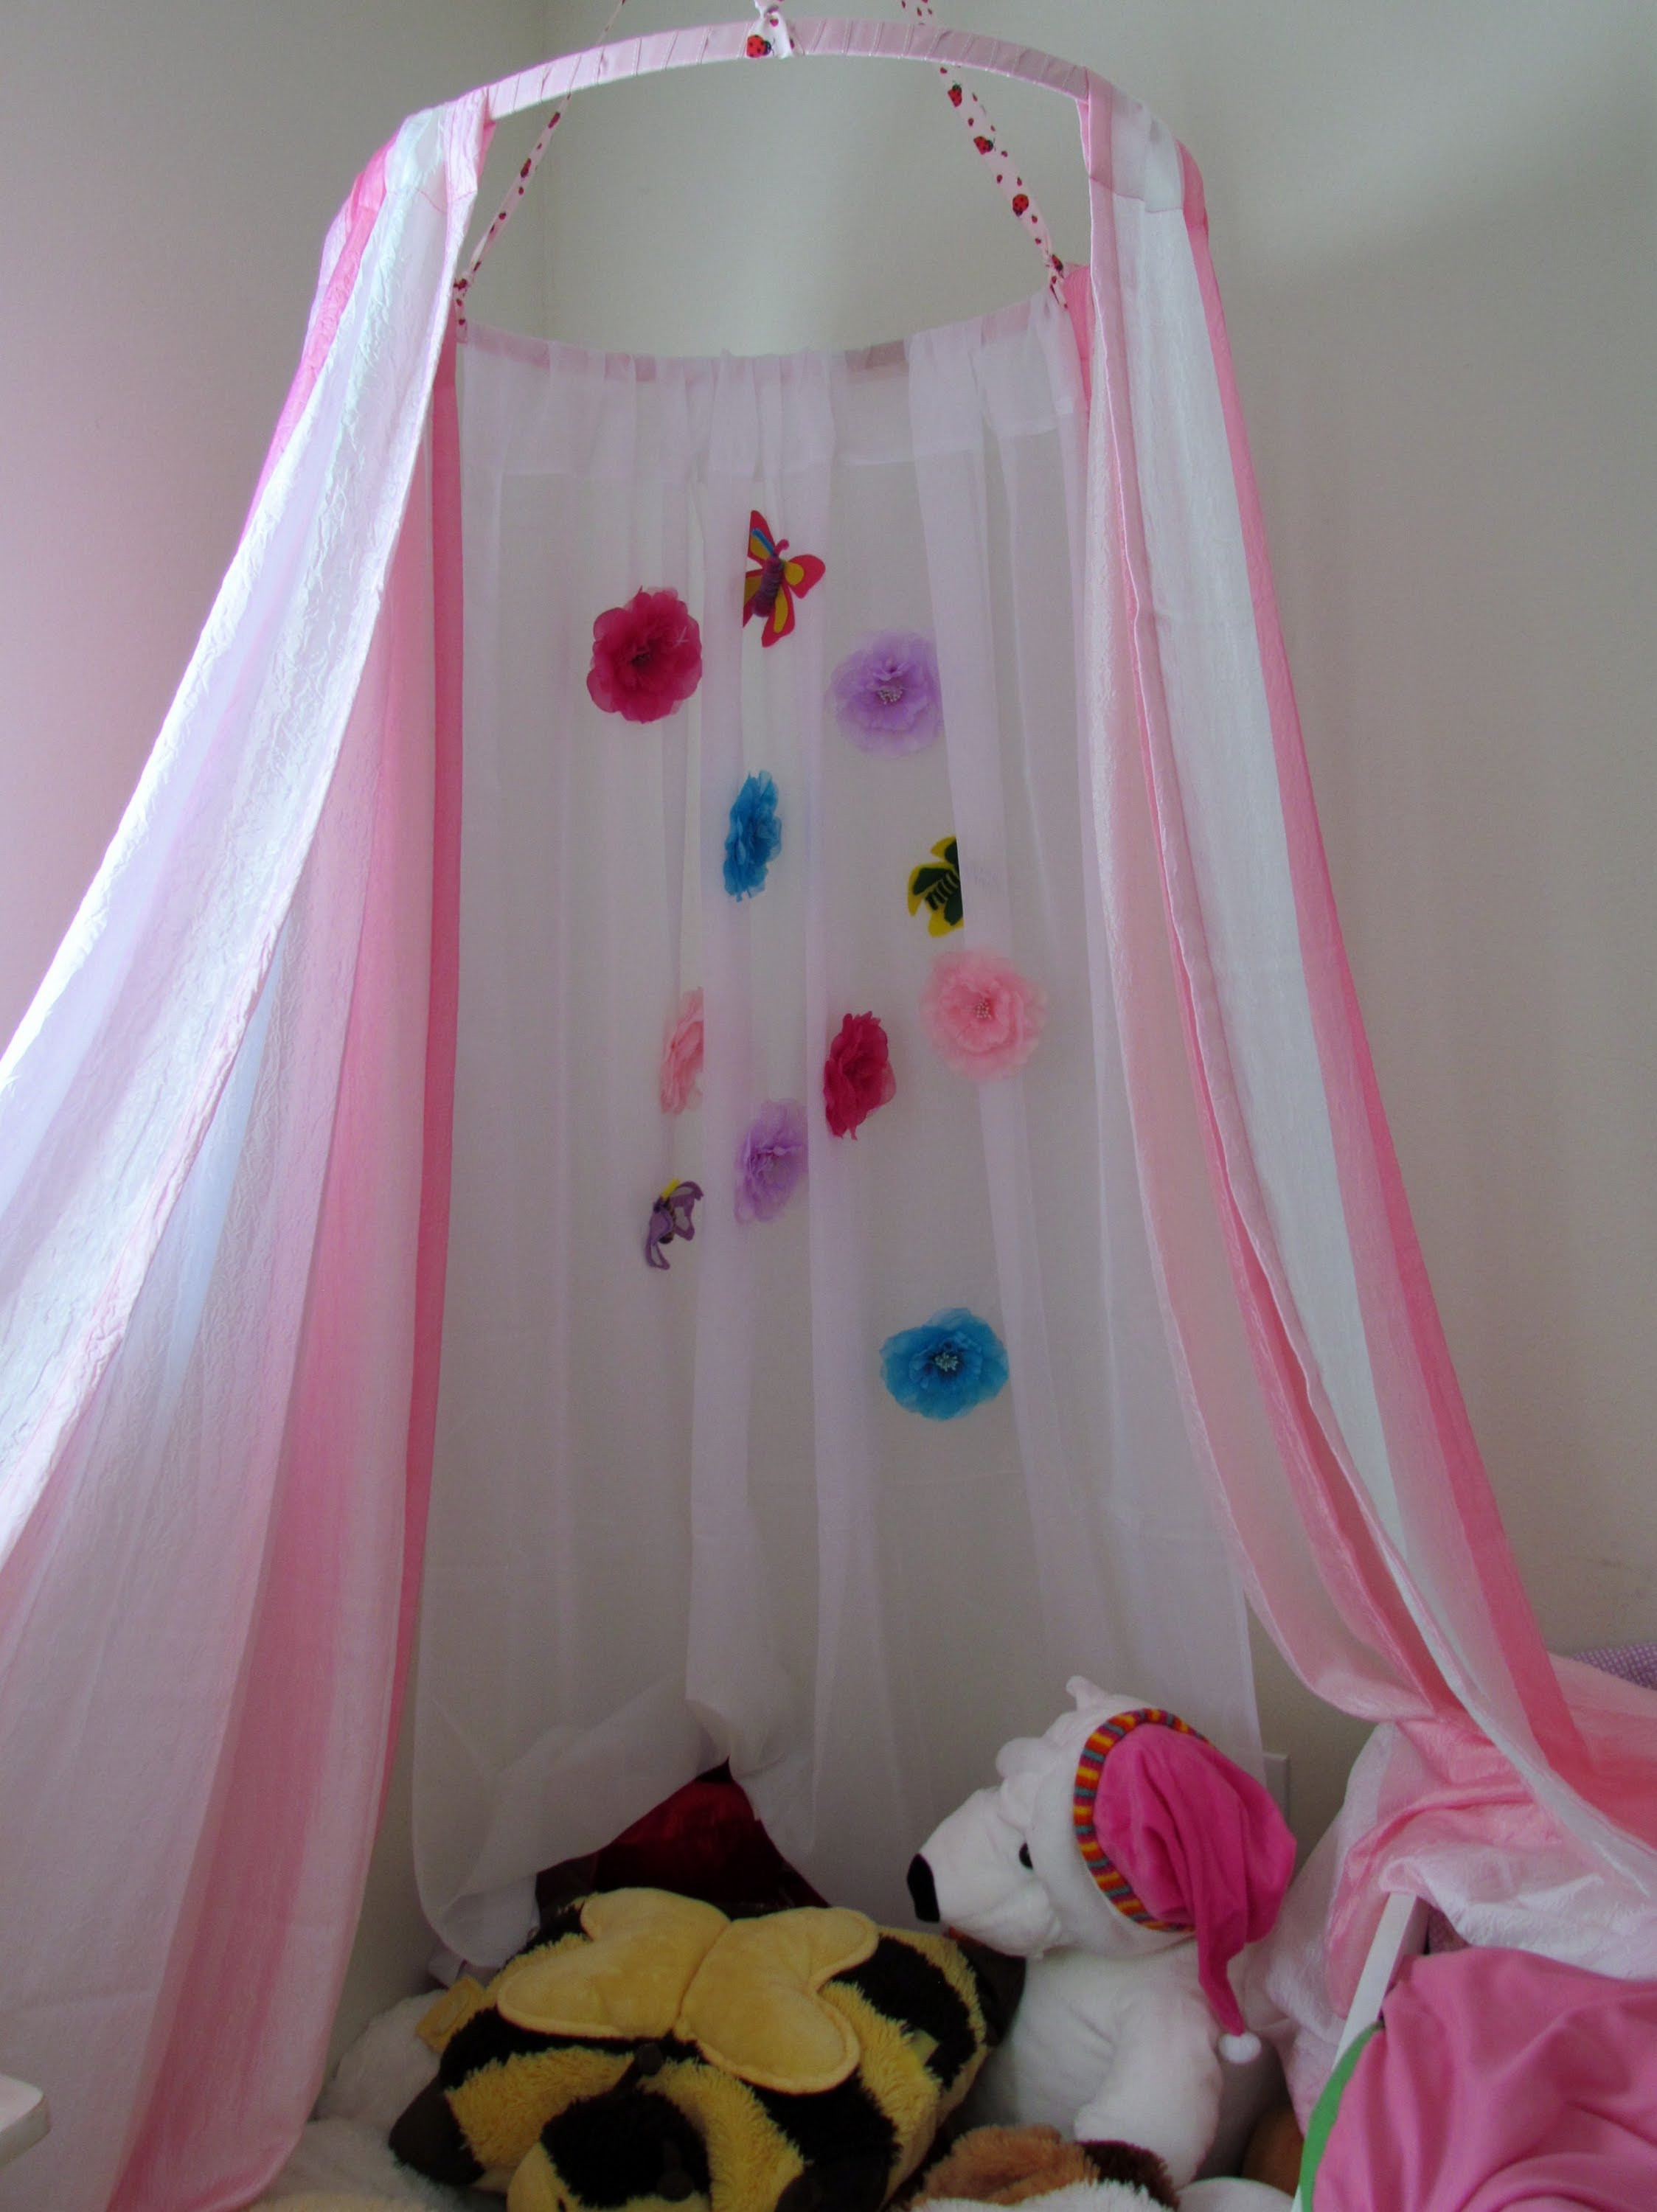 Best ideas about DIY Kids Canopy . Save or Pin Girl Bed Canopy Ideas & Amazing Best 25 Toddler Canopy Bed Now.